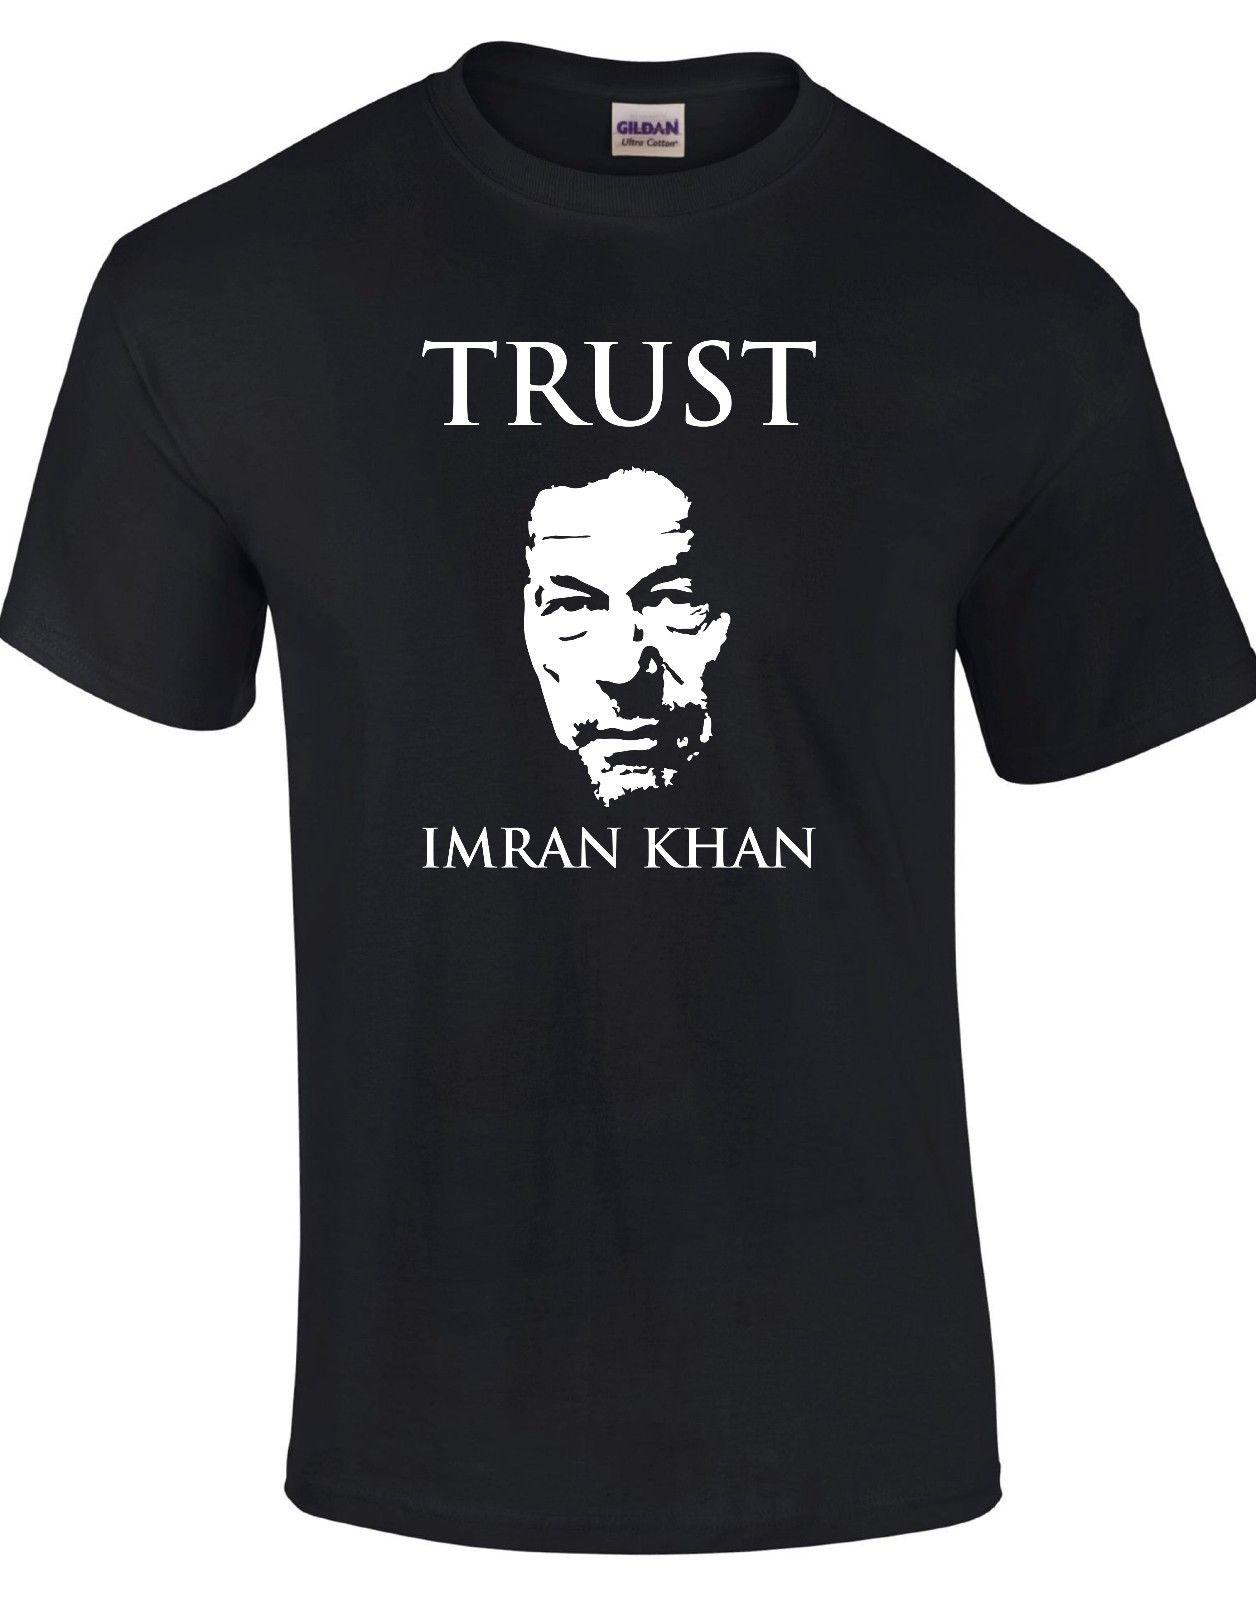 ebd0f60279fbe TRUST - IMRAN KHAN Black T-SHIRT - PAKISTAN ELECTION - LADIES KIDS MENS  Hope Online with  13.66 Piece on Crazytshirts30 s Store